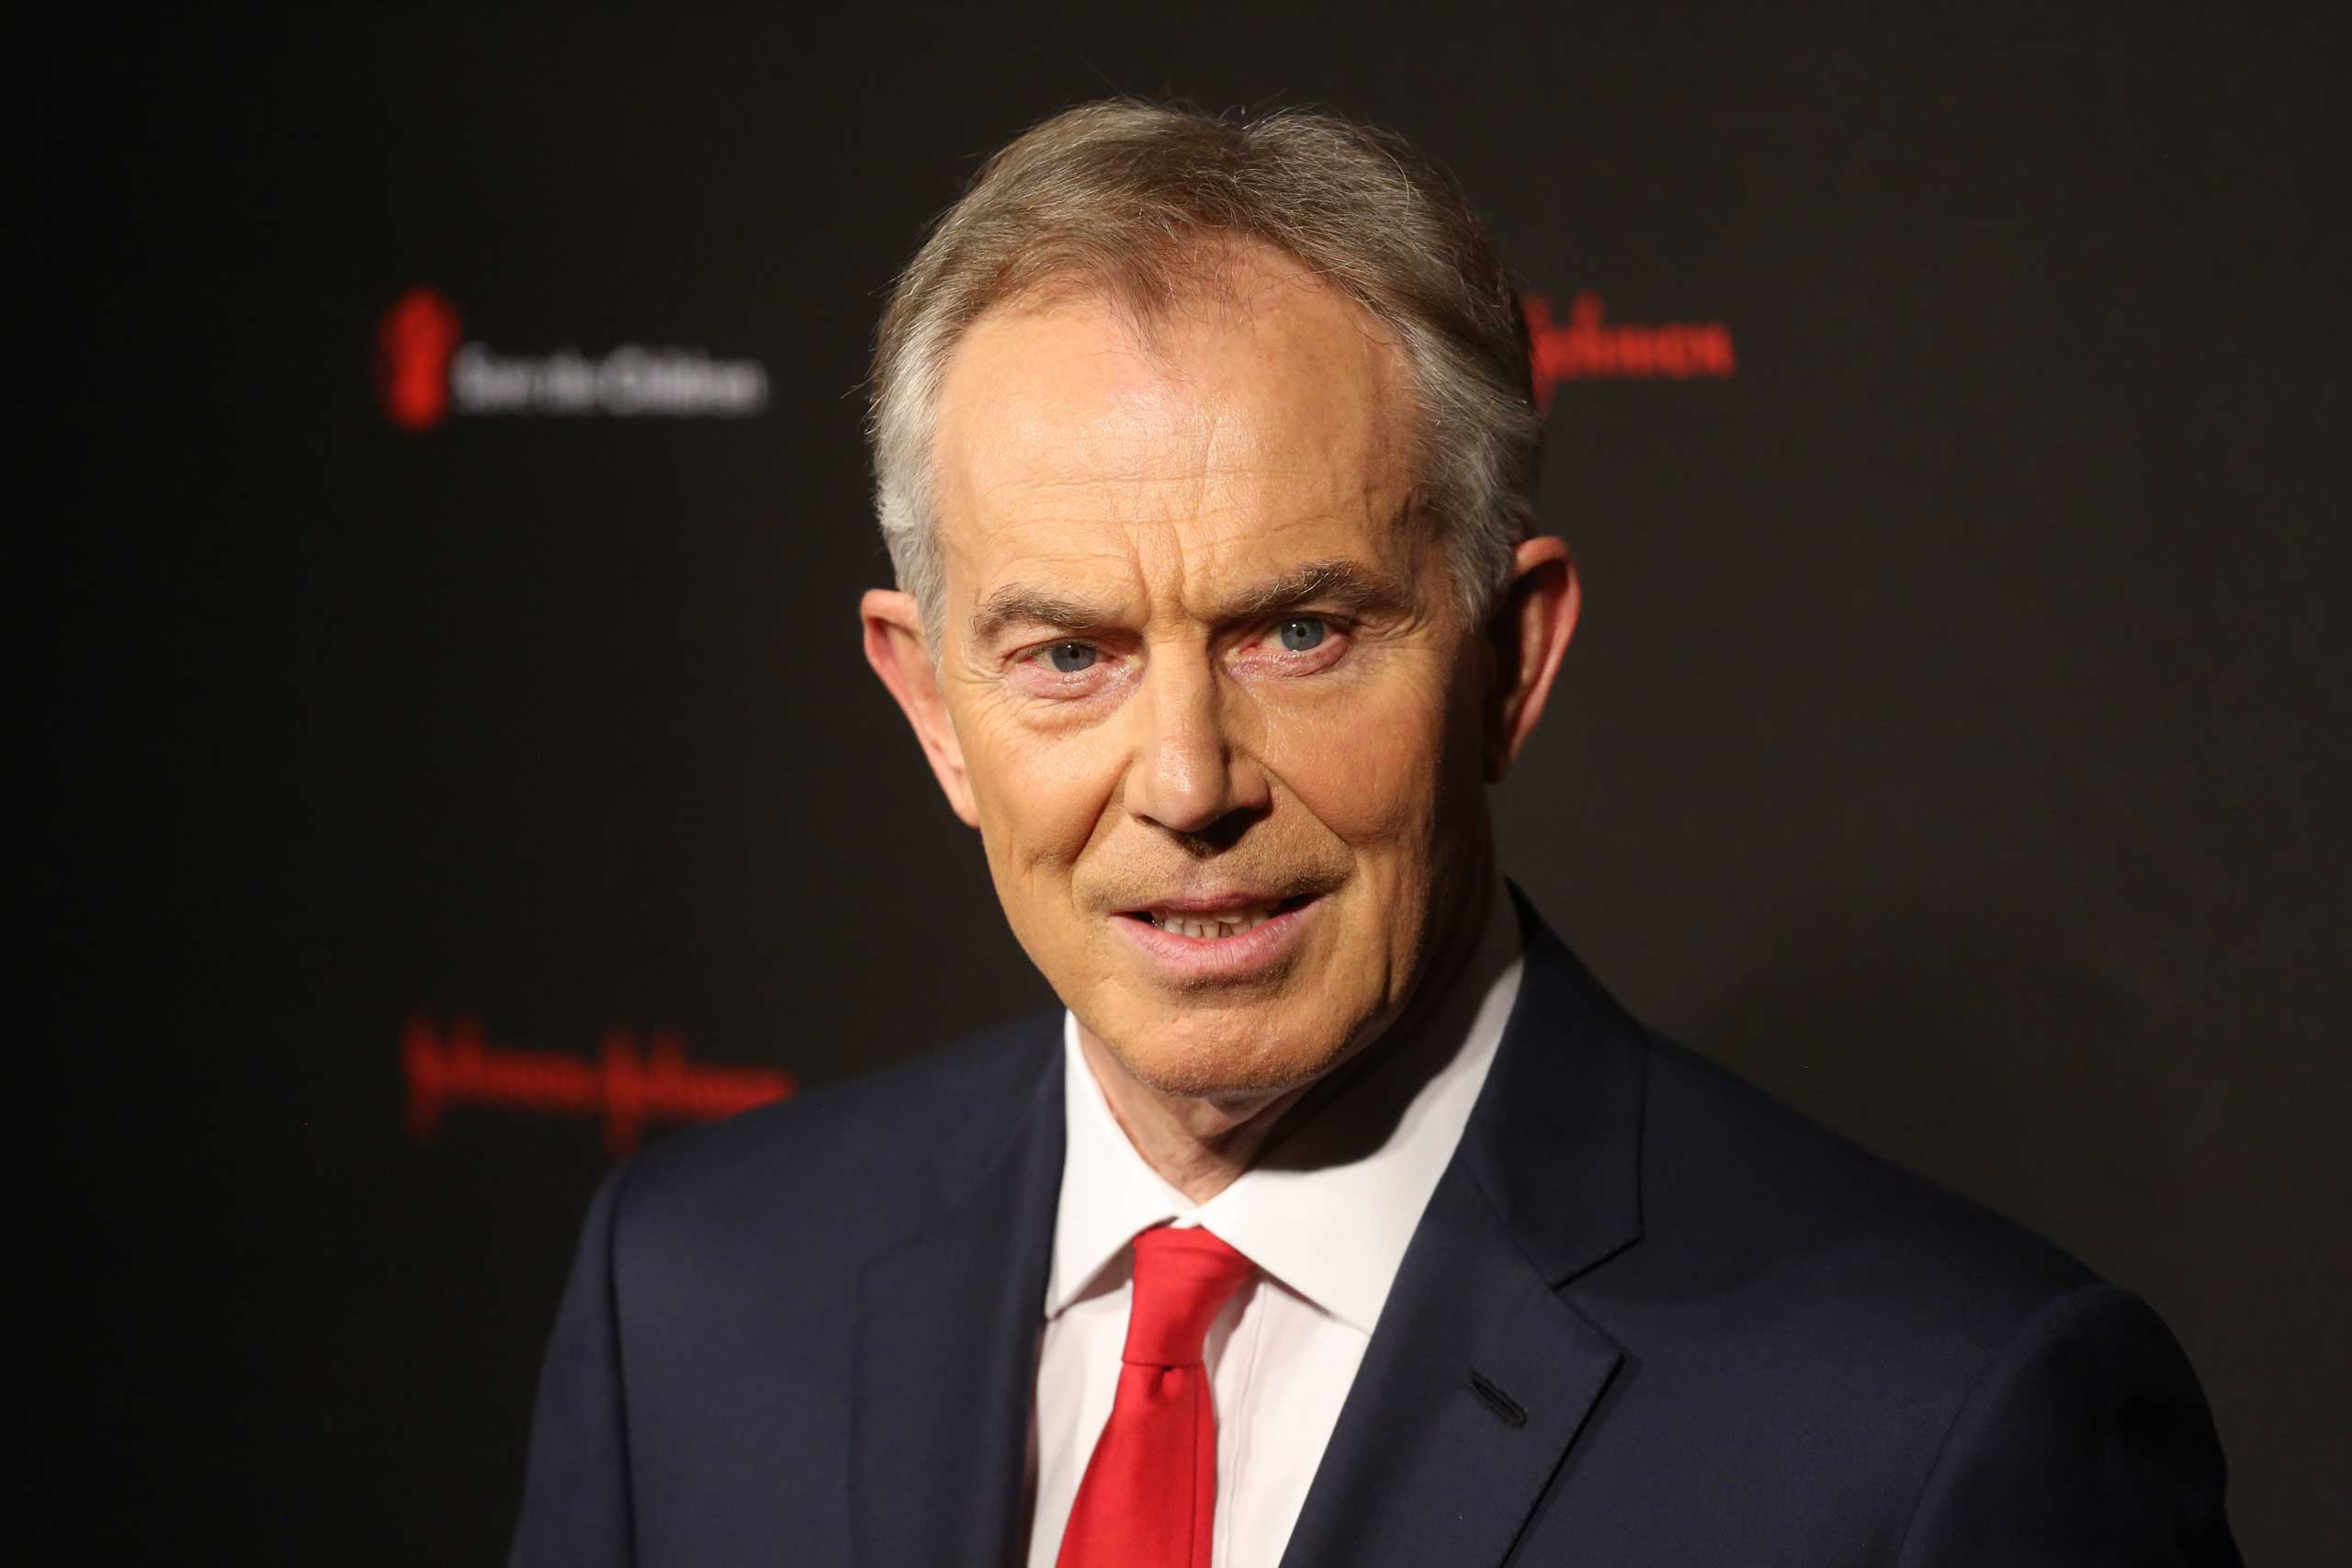 Former British prime minister Tony Blair attends the 2nd annual Save The Children Illumination Gala at the Plaza in New York, Nov. 19,  2014.